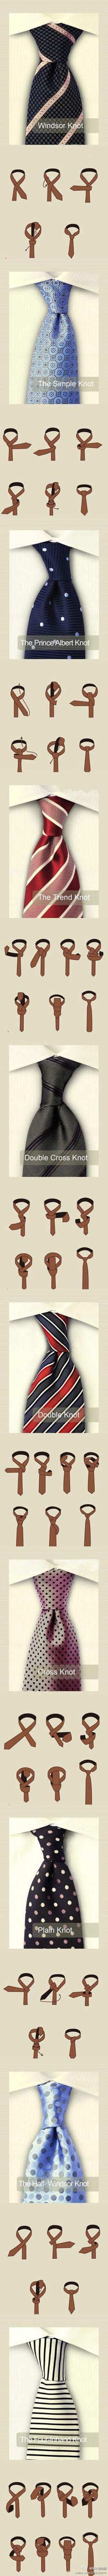 There is more than just a half windsor knot.